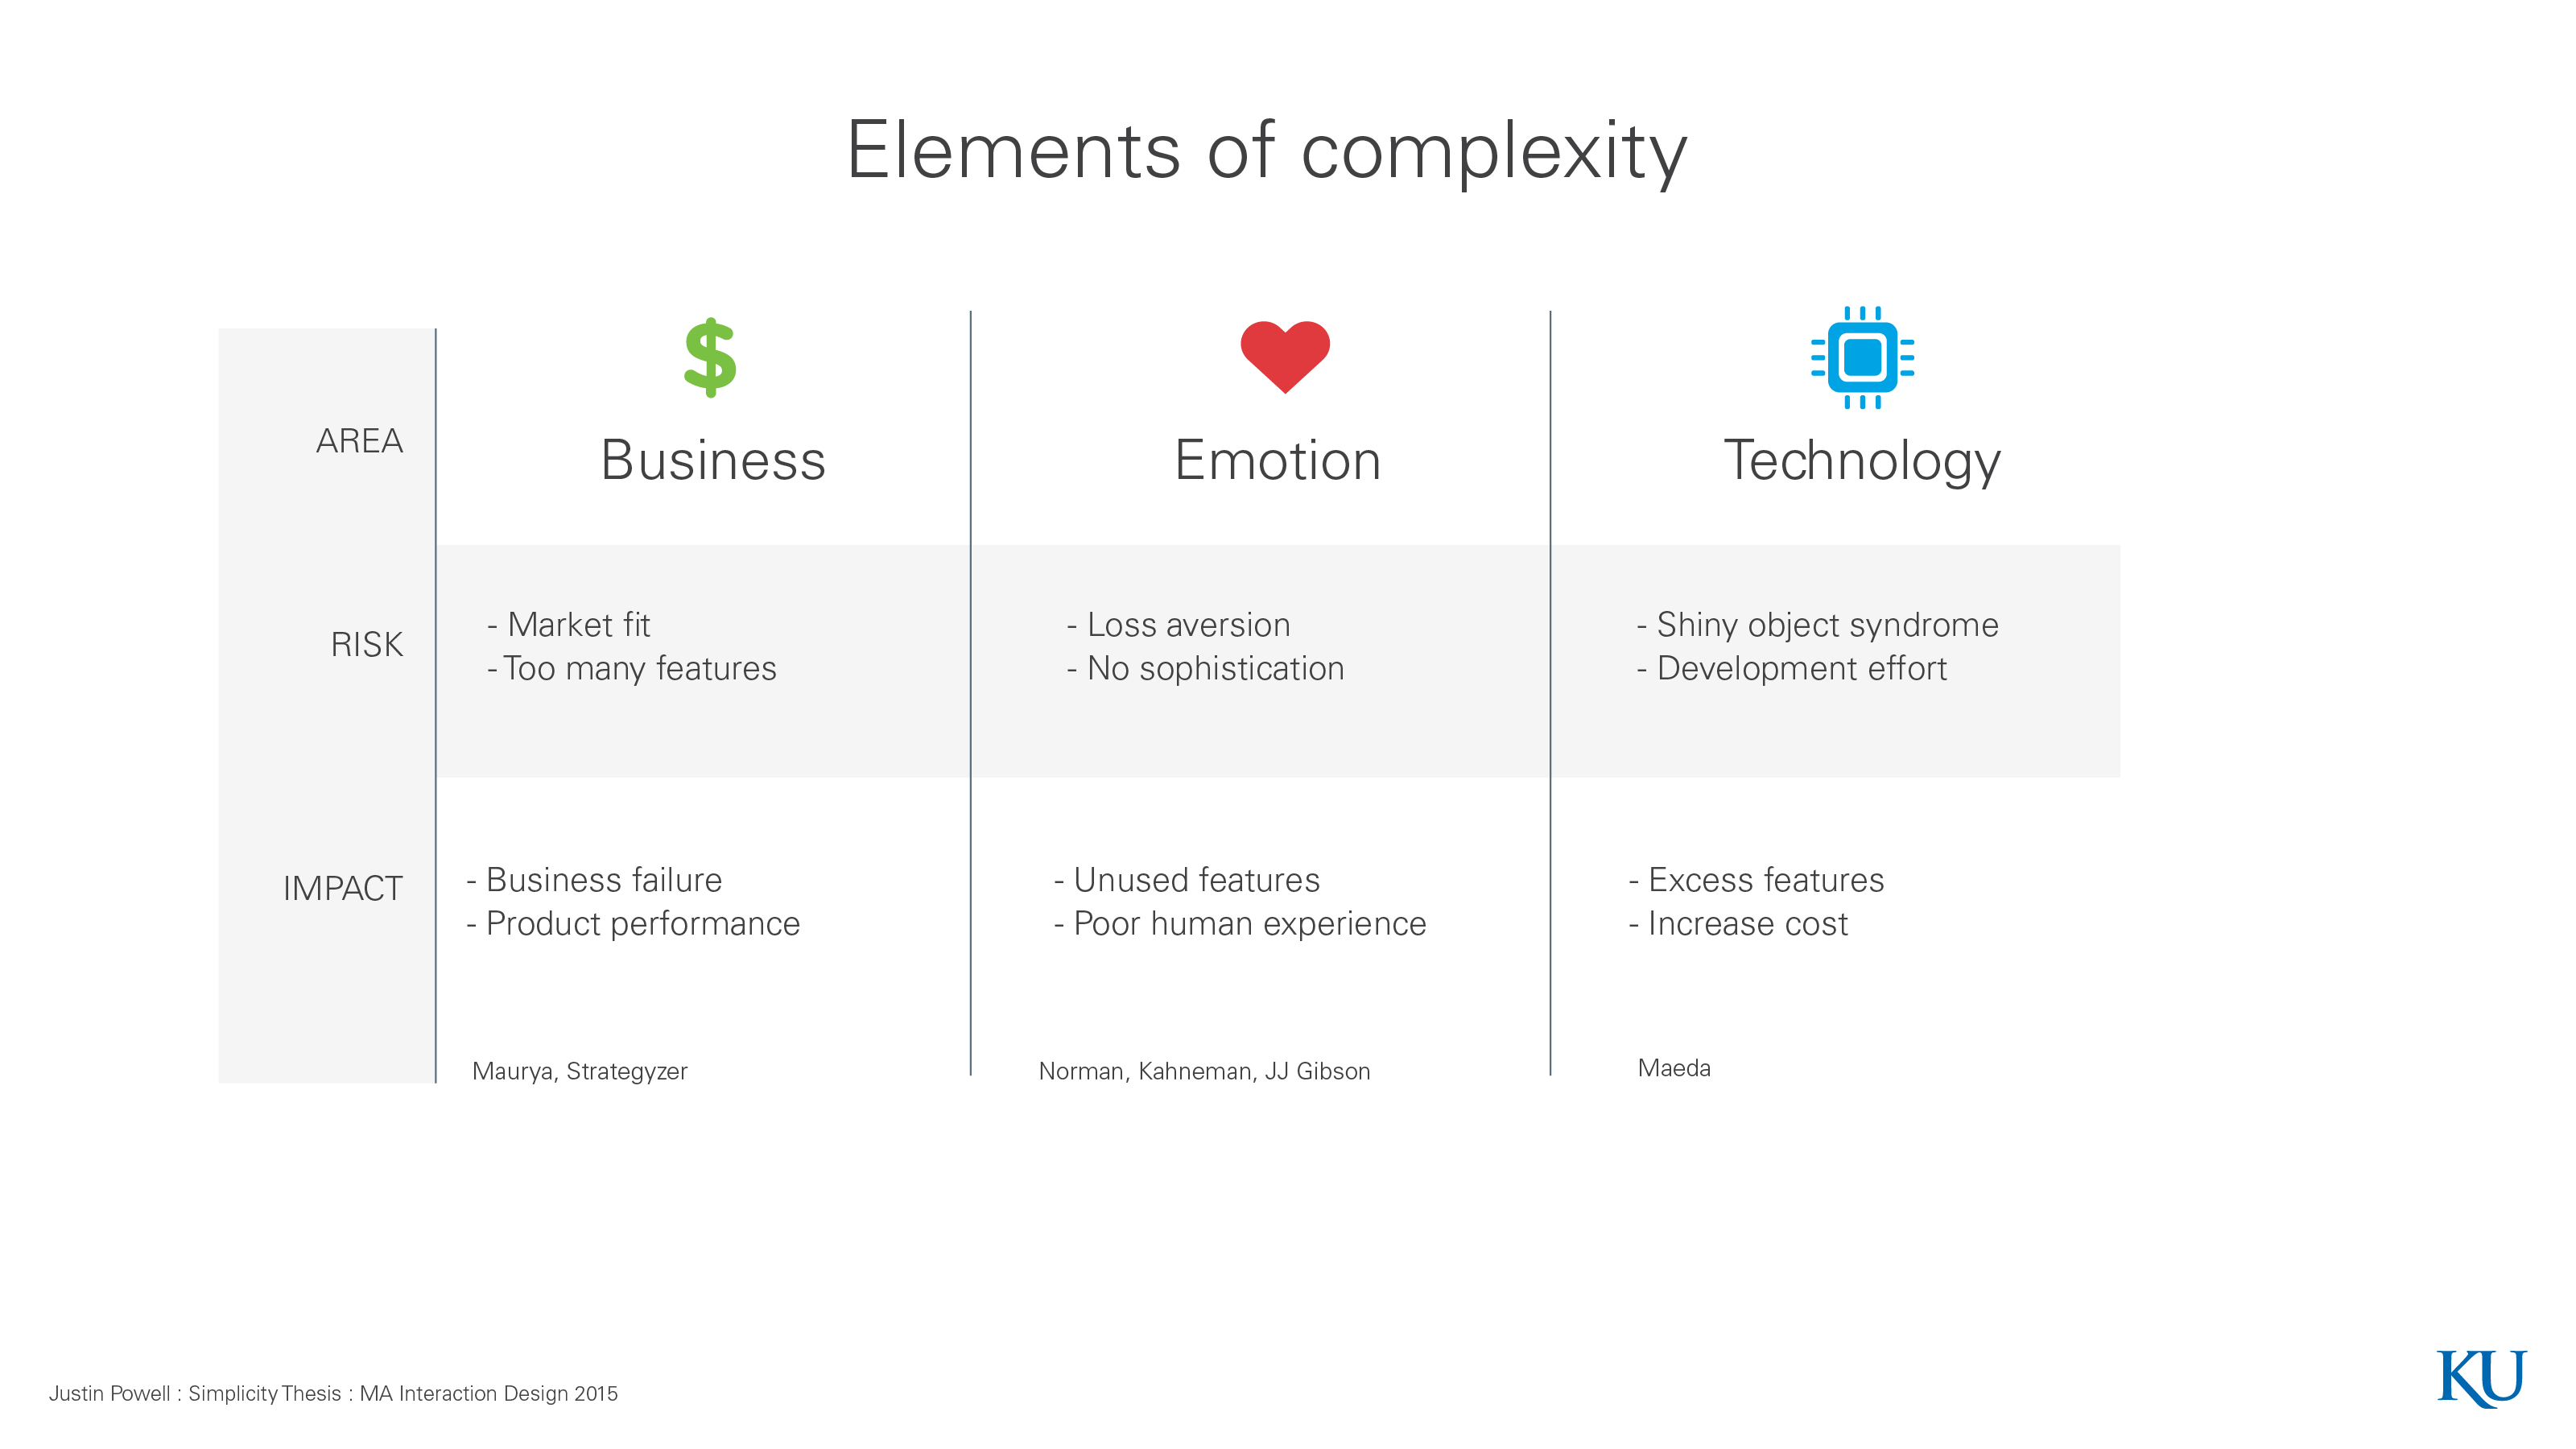 Elements of Complexity